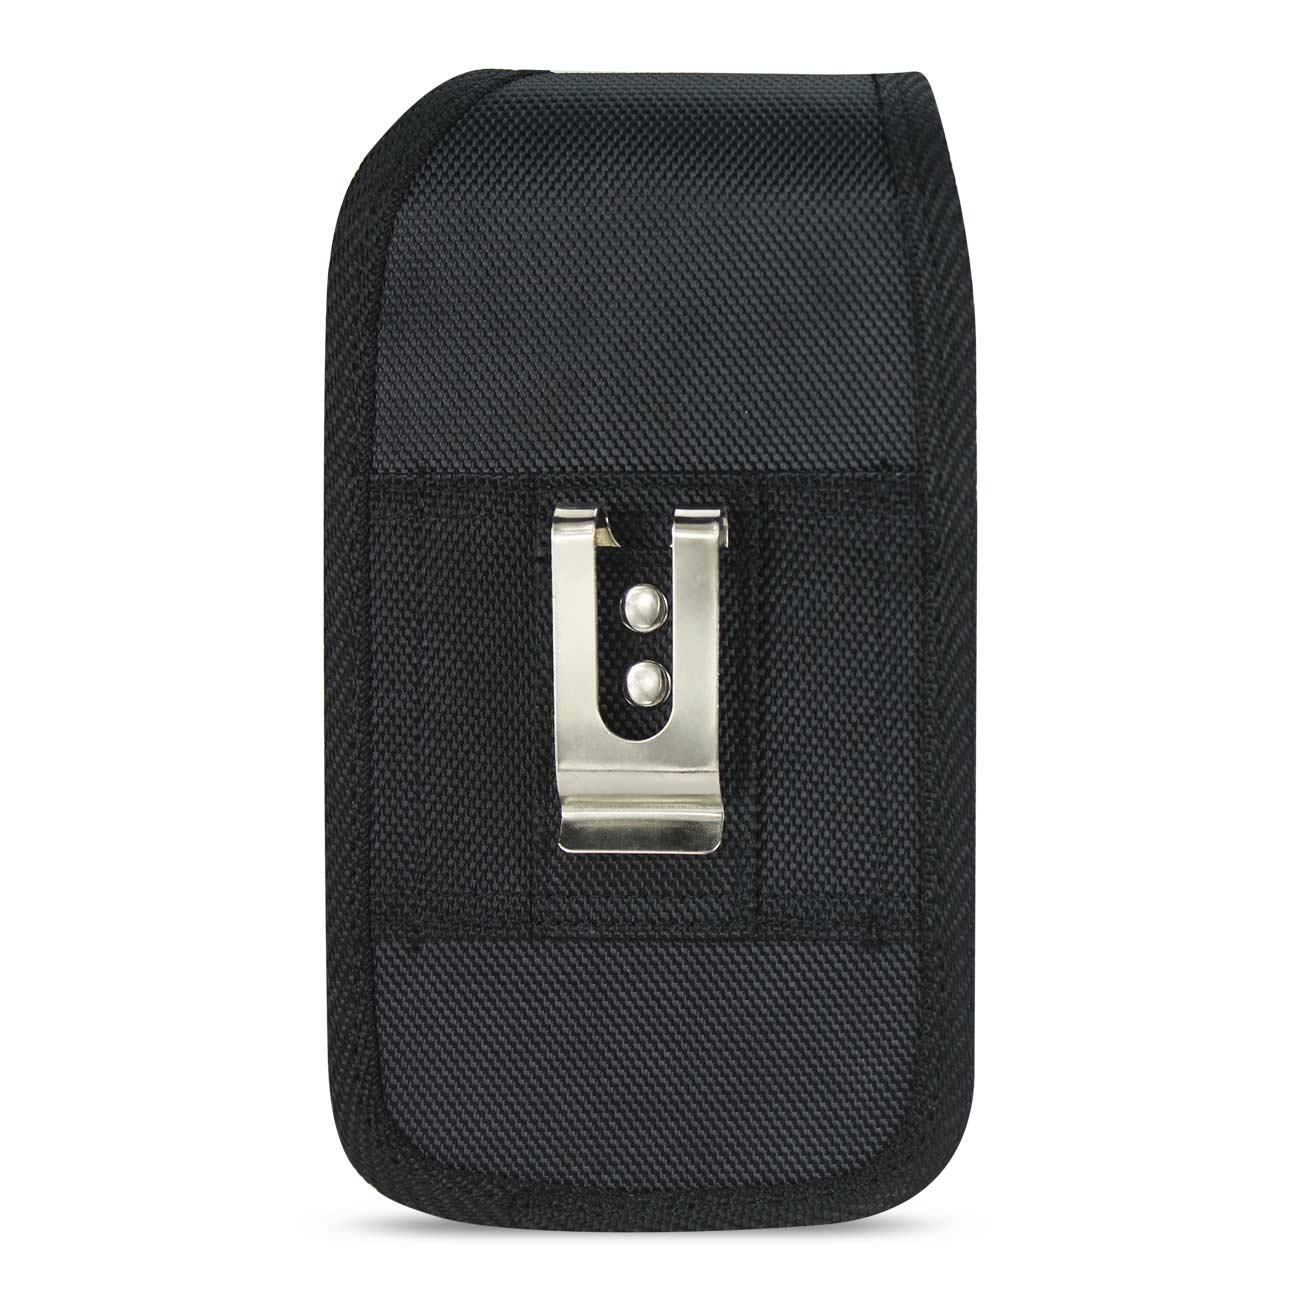 Vertical Rugged Pouch With Metal Belt Clip In Black (6.1X3.2X0.7 Inches)